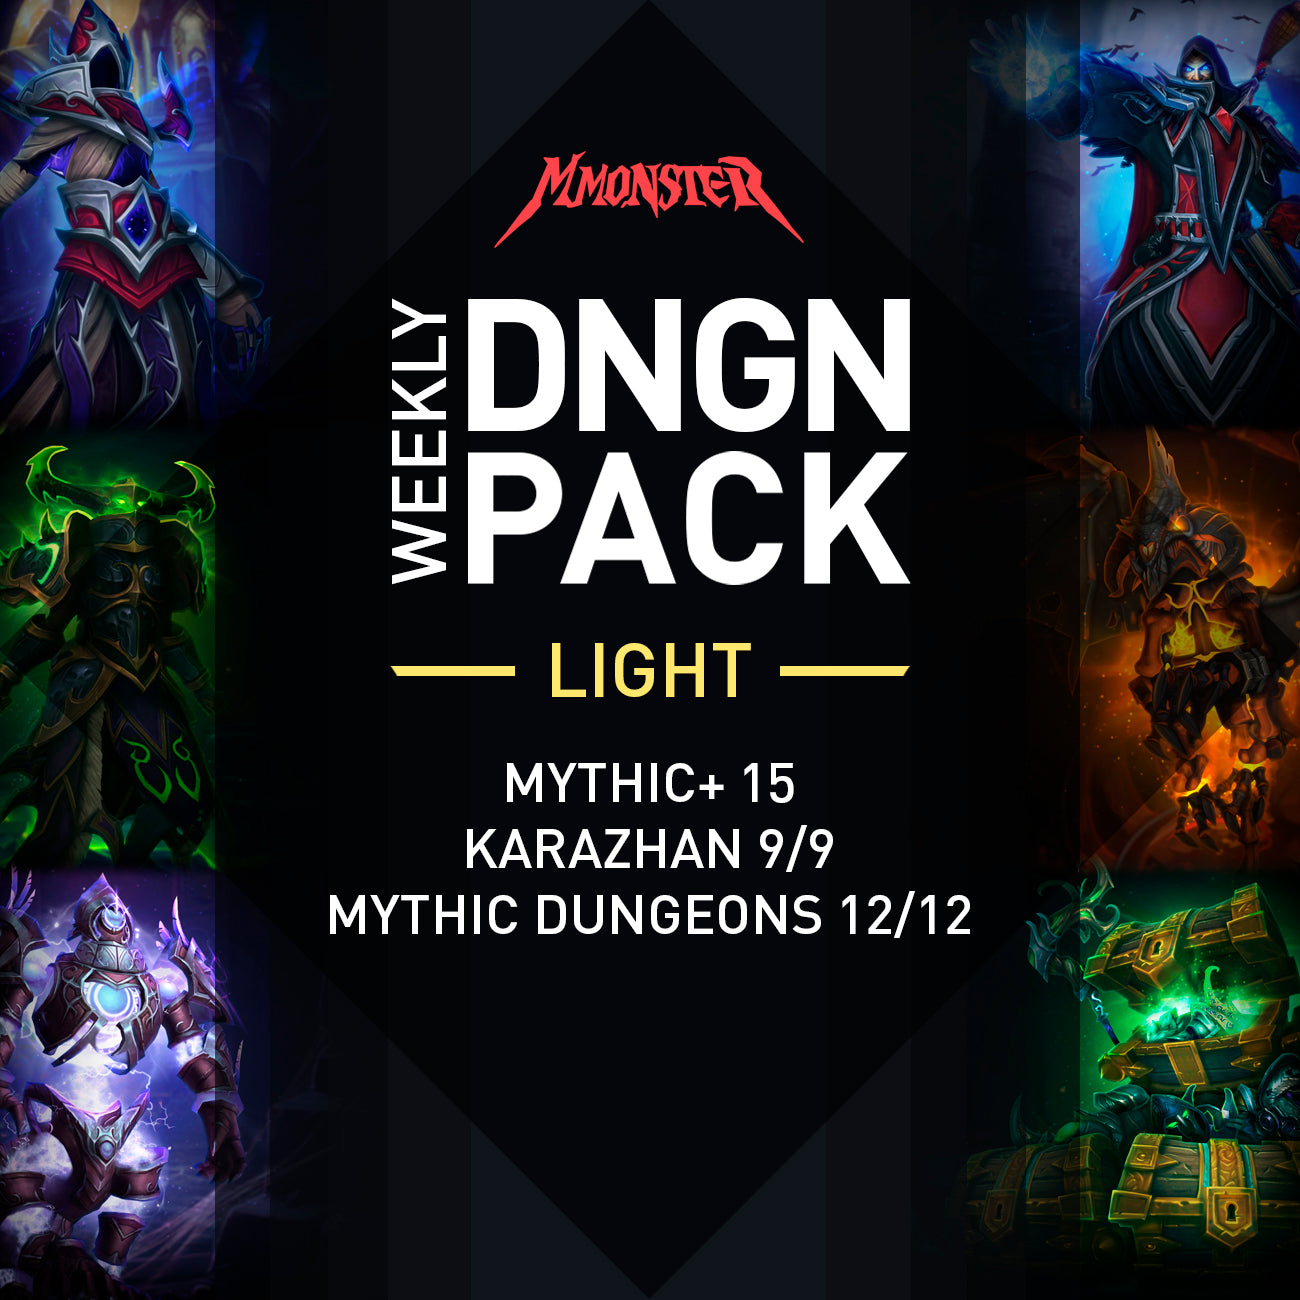 Legion Weekly DNGN Pack